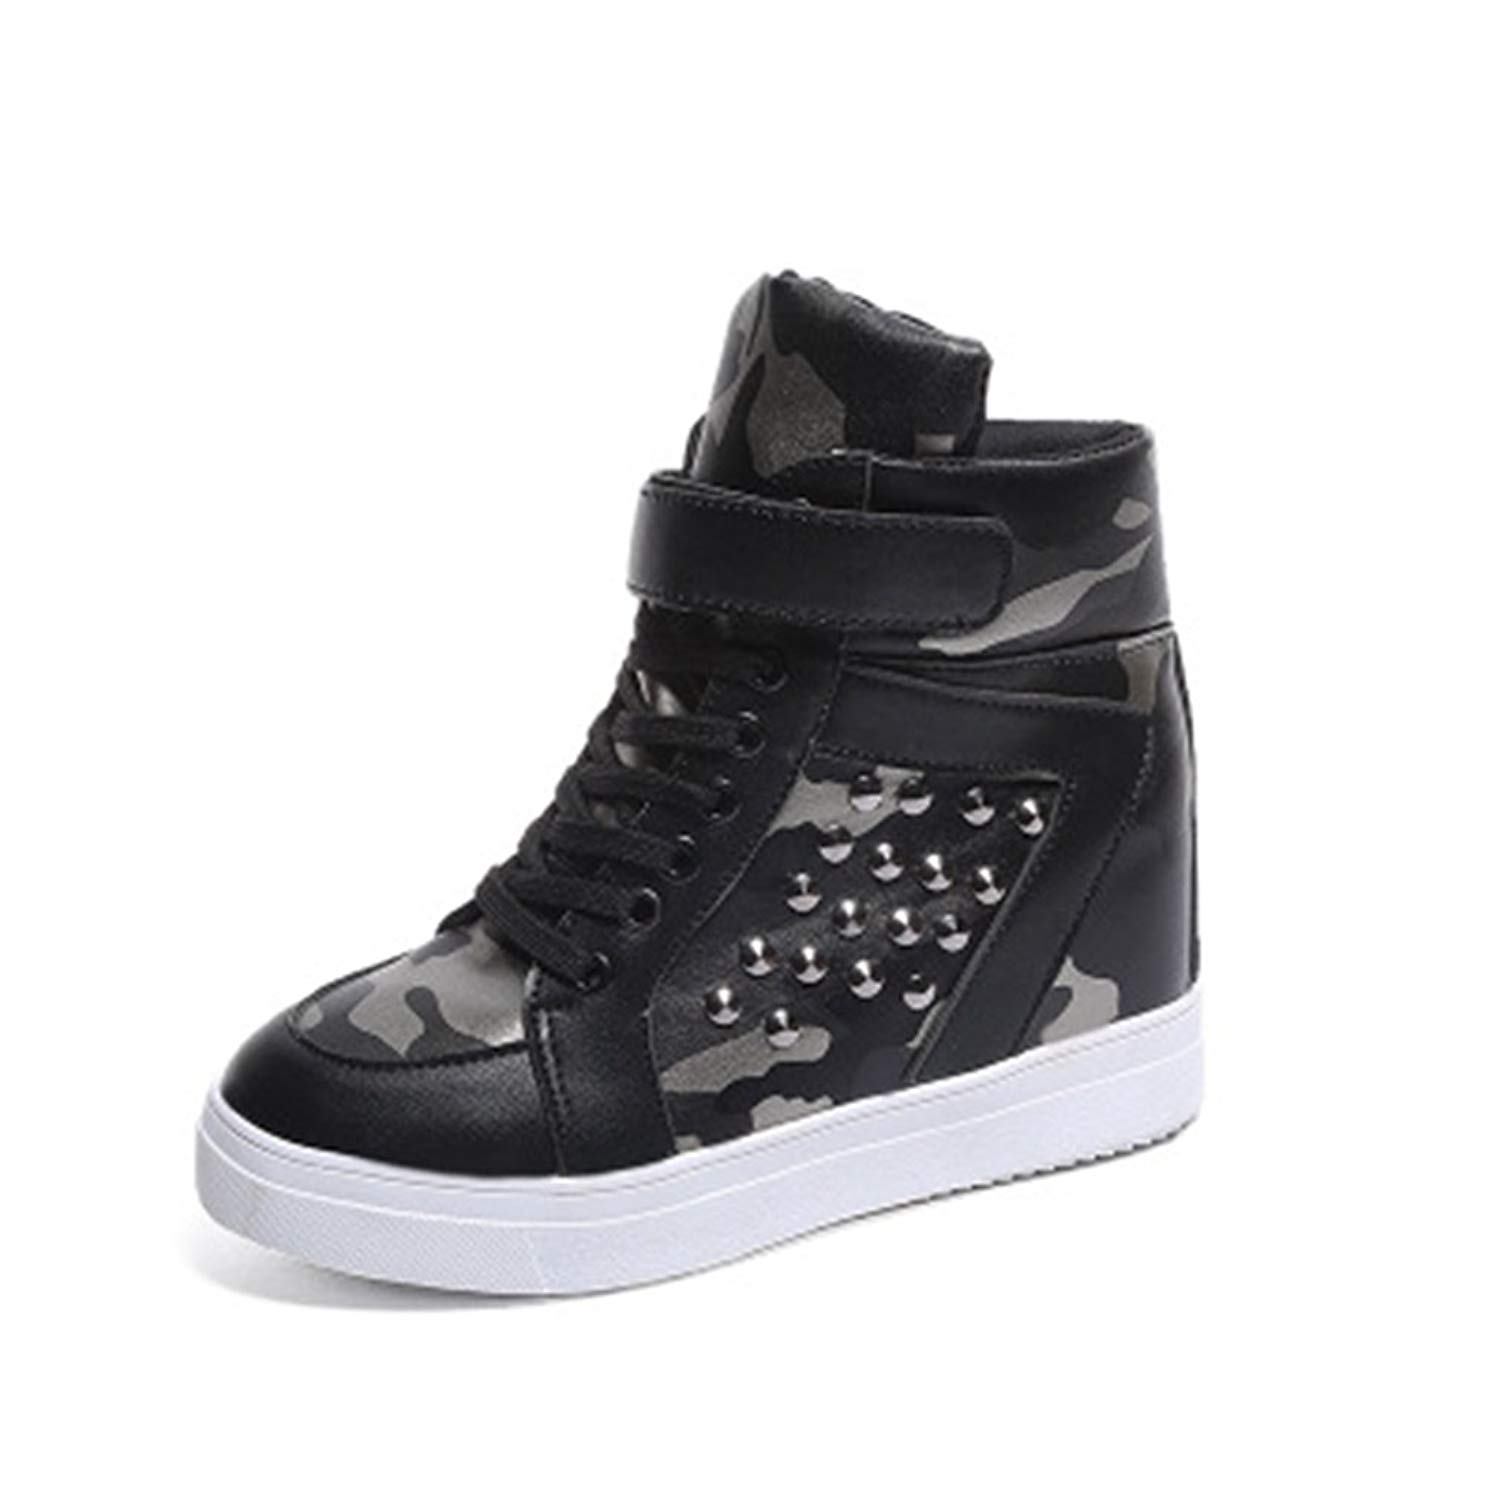 7bc8b30ddd19 Get Quotations · GIY Women s High Top Fashion Sneakers Lace up Wedges  Platform Round Toe Hidden Heel Rivets Sneaker